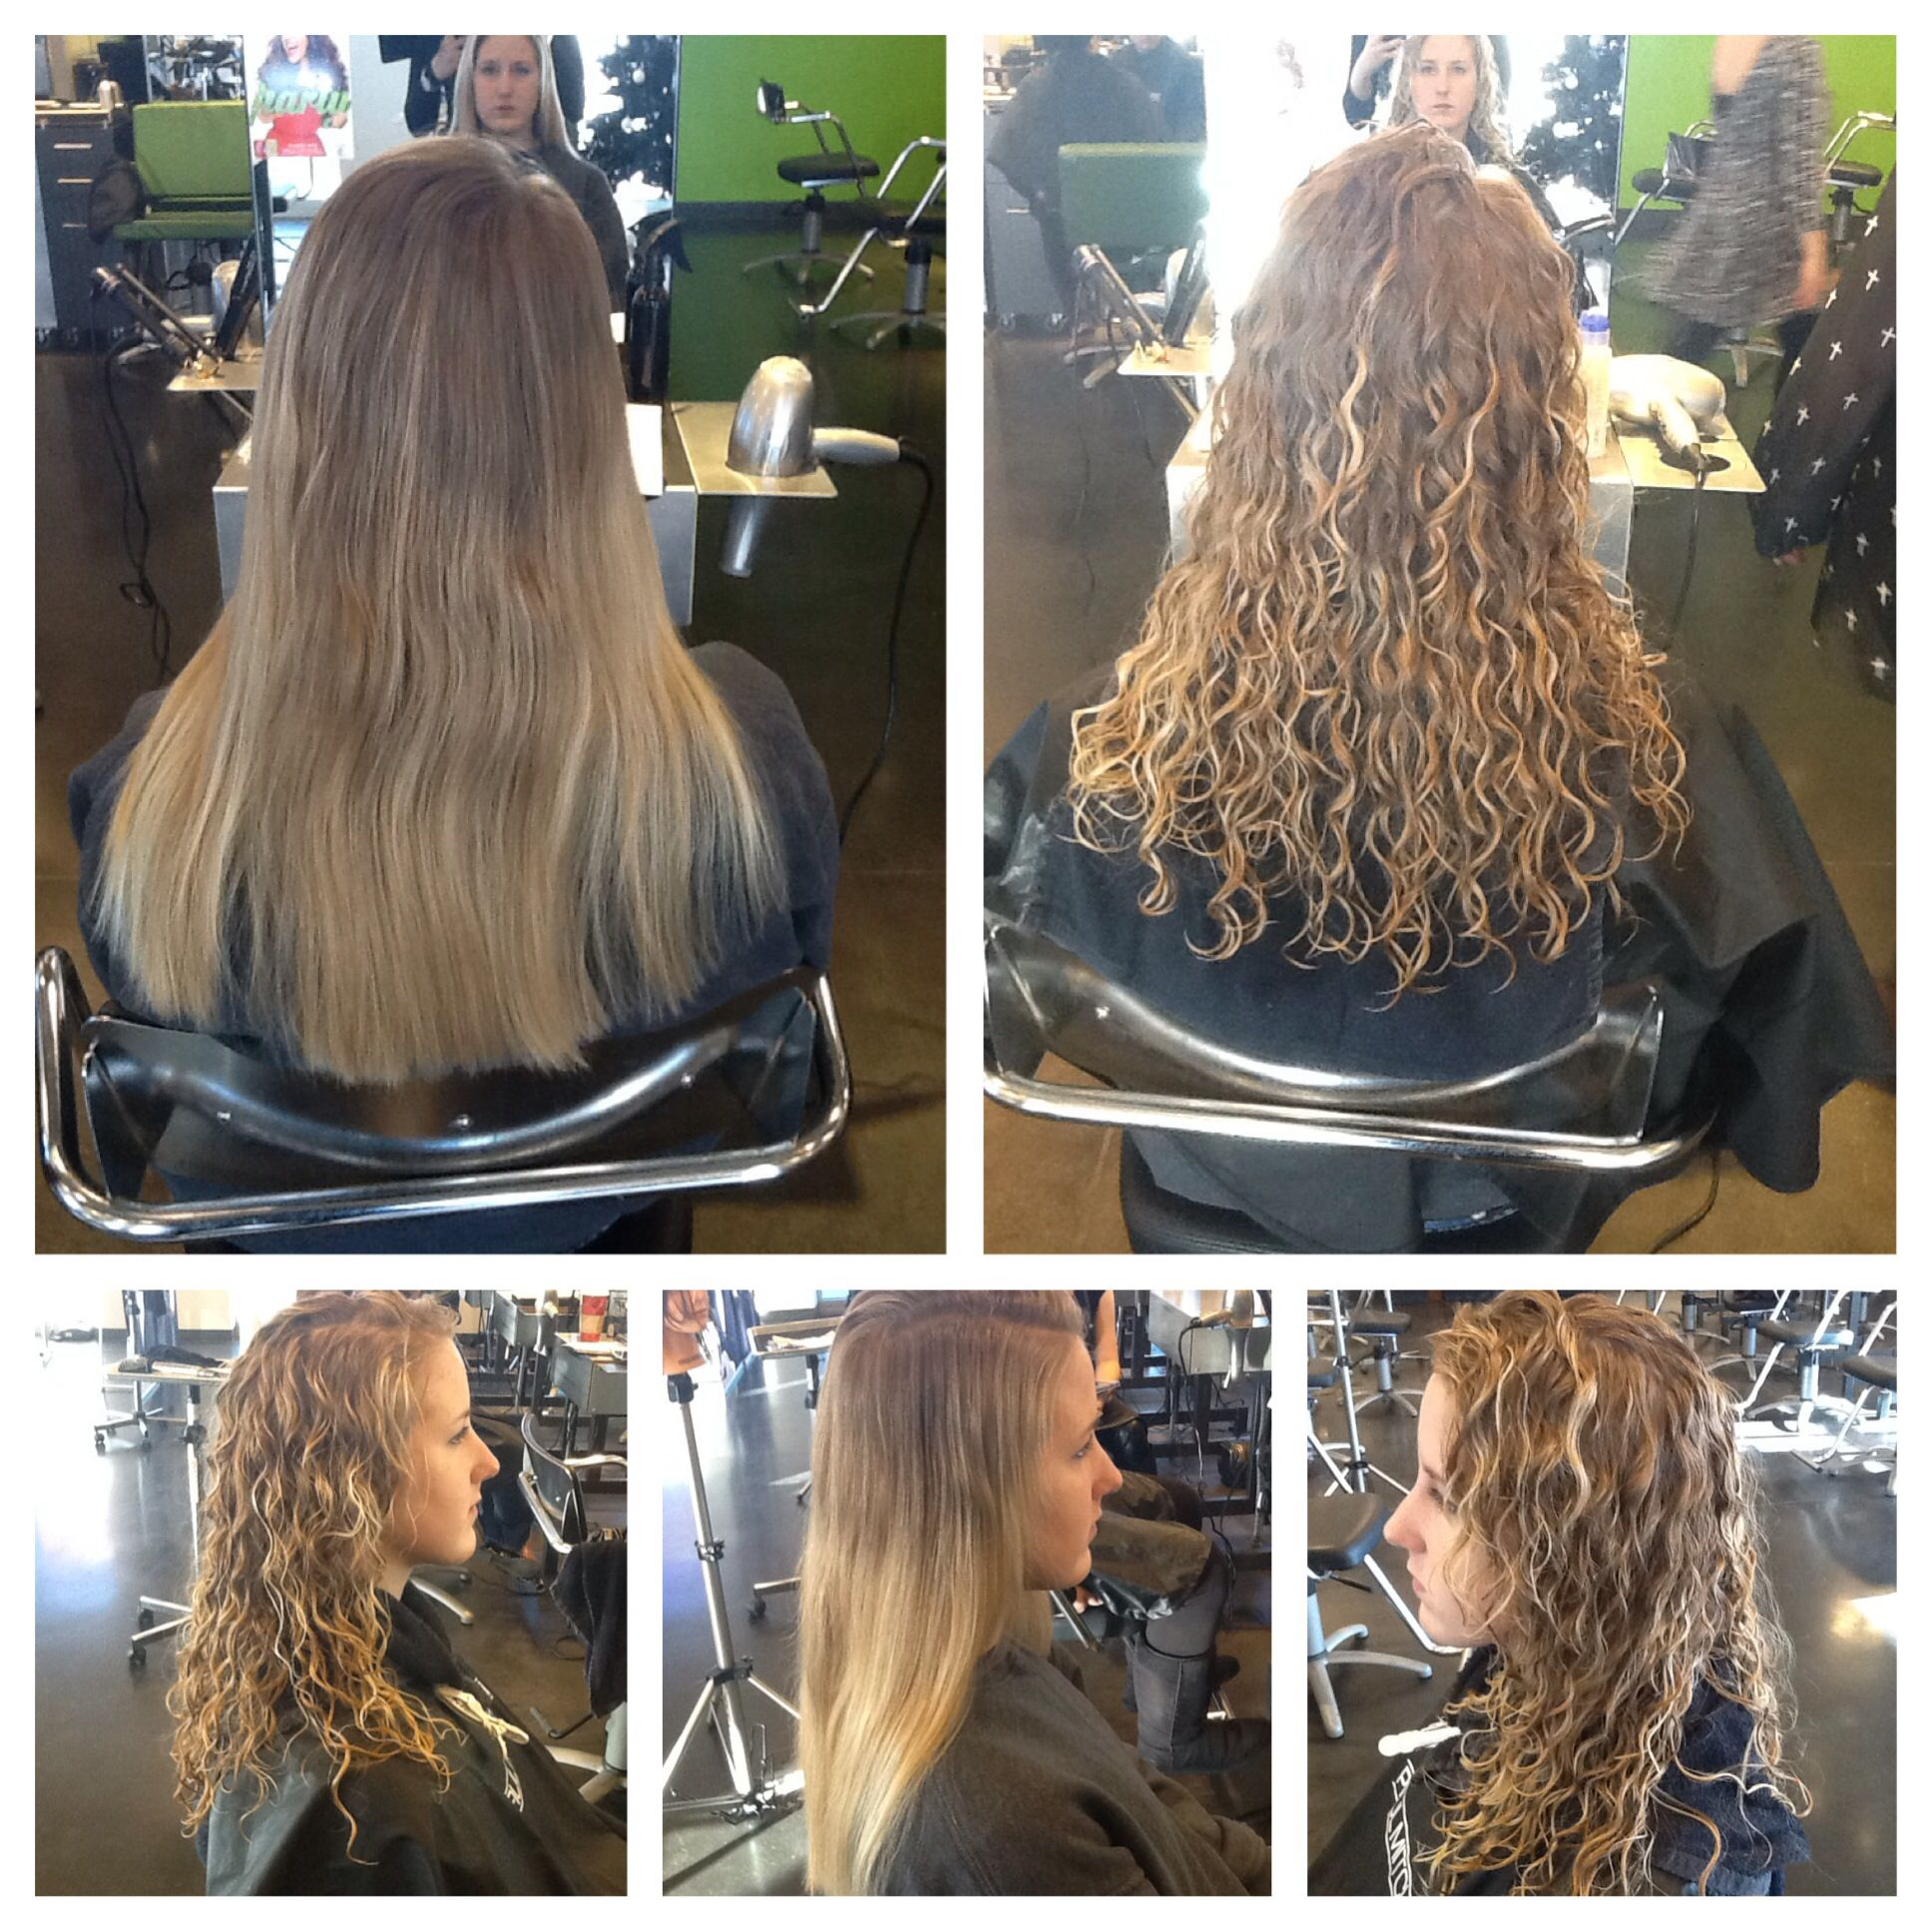 Wavy Spiral Perm Too Bad My Hair Can 39 T Naturally Look Like Spiral Perm Long Hair Spiral Perm Hair